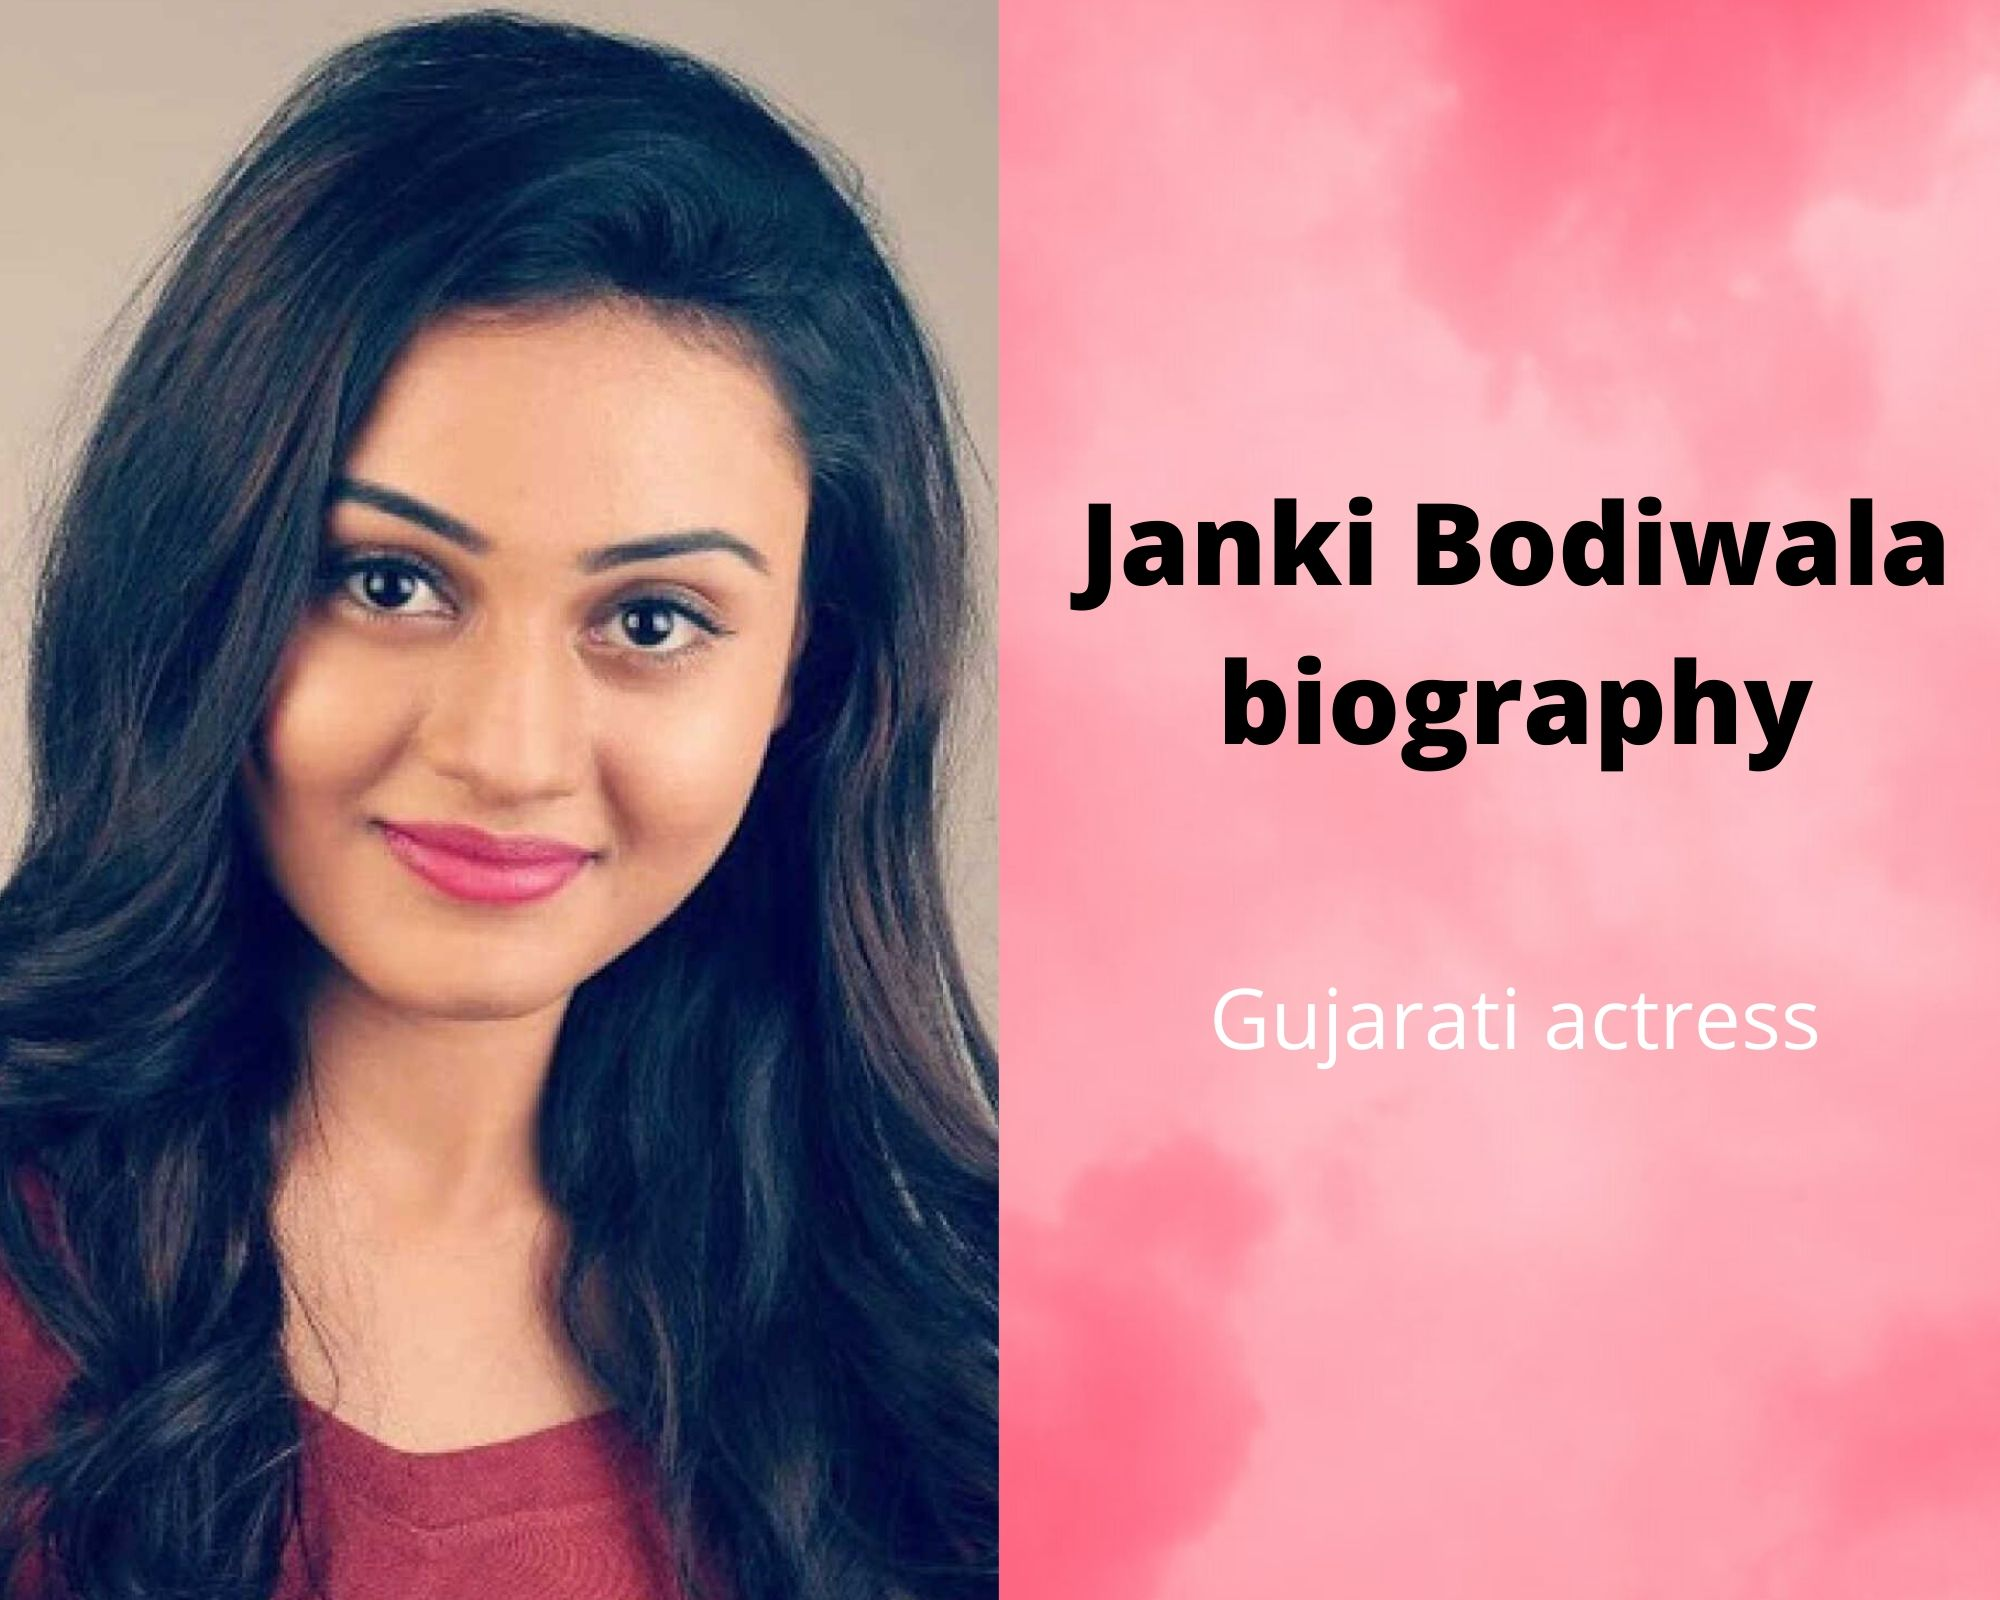 Janki Bodiwala biography